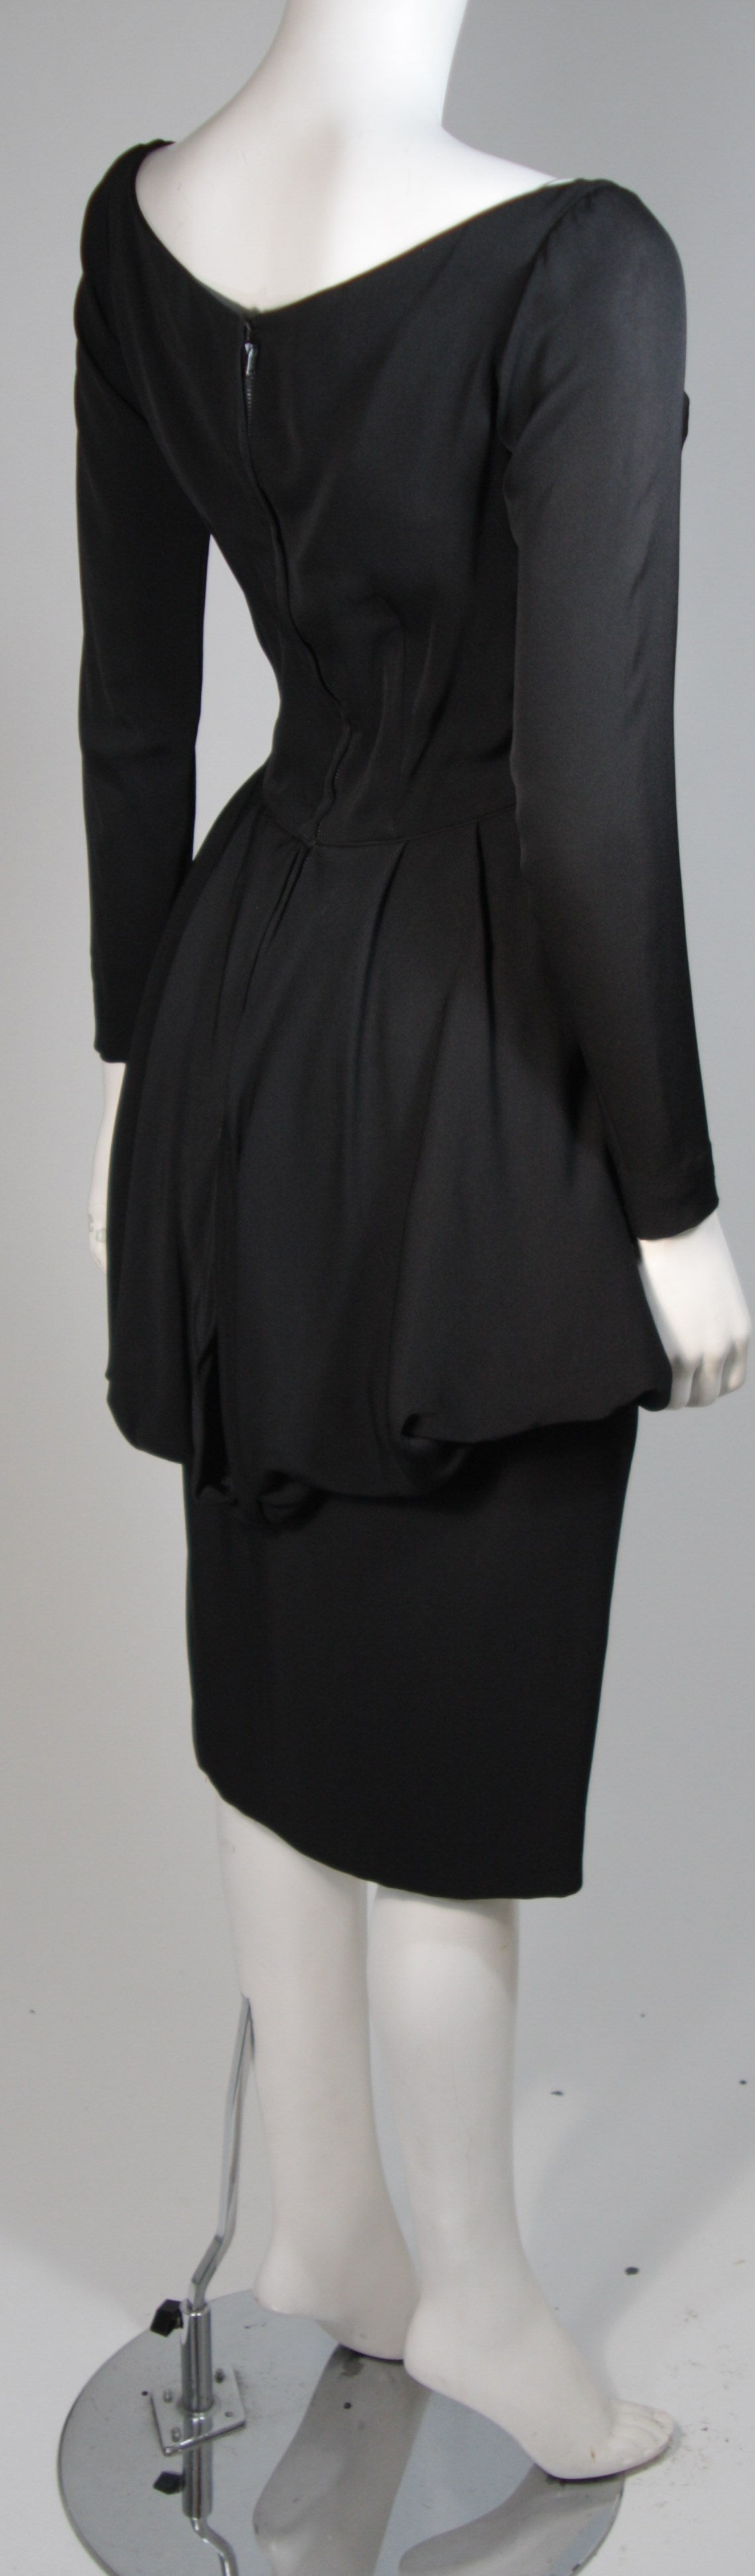 Ceil Chapman 1950's Black Cocktail Dress with Draped Peplum Detail Size Small 6